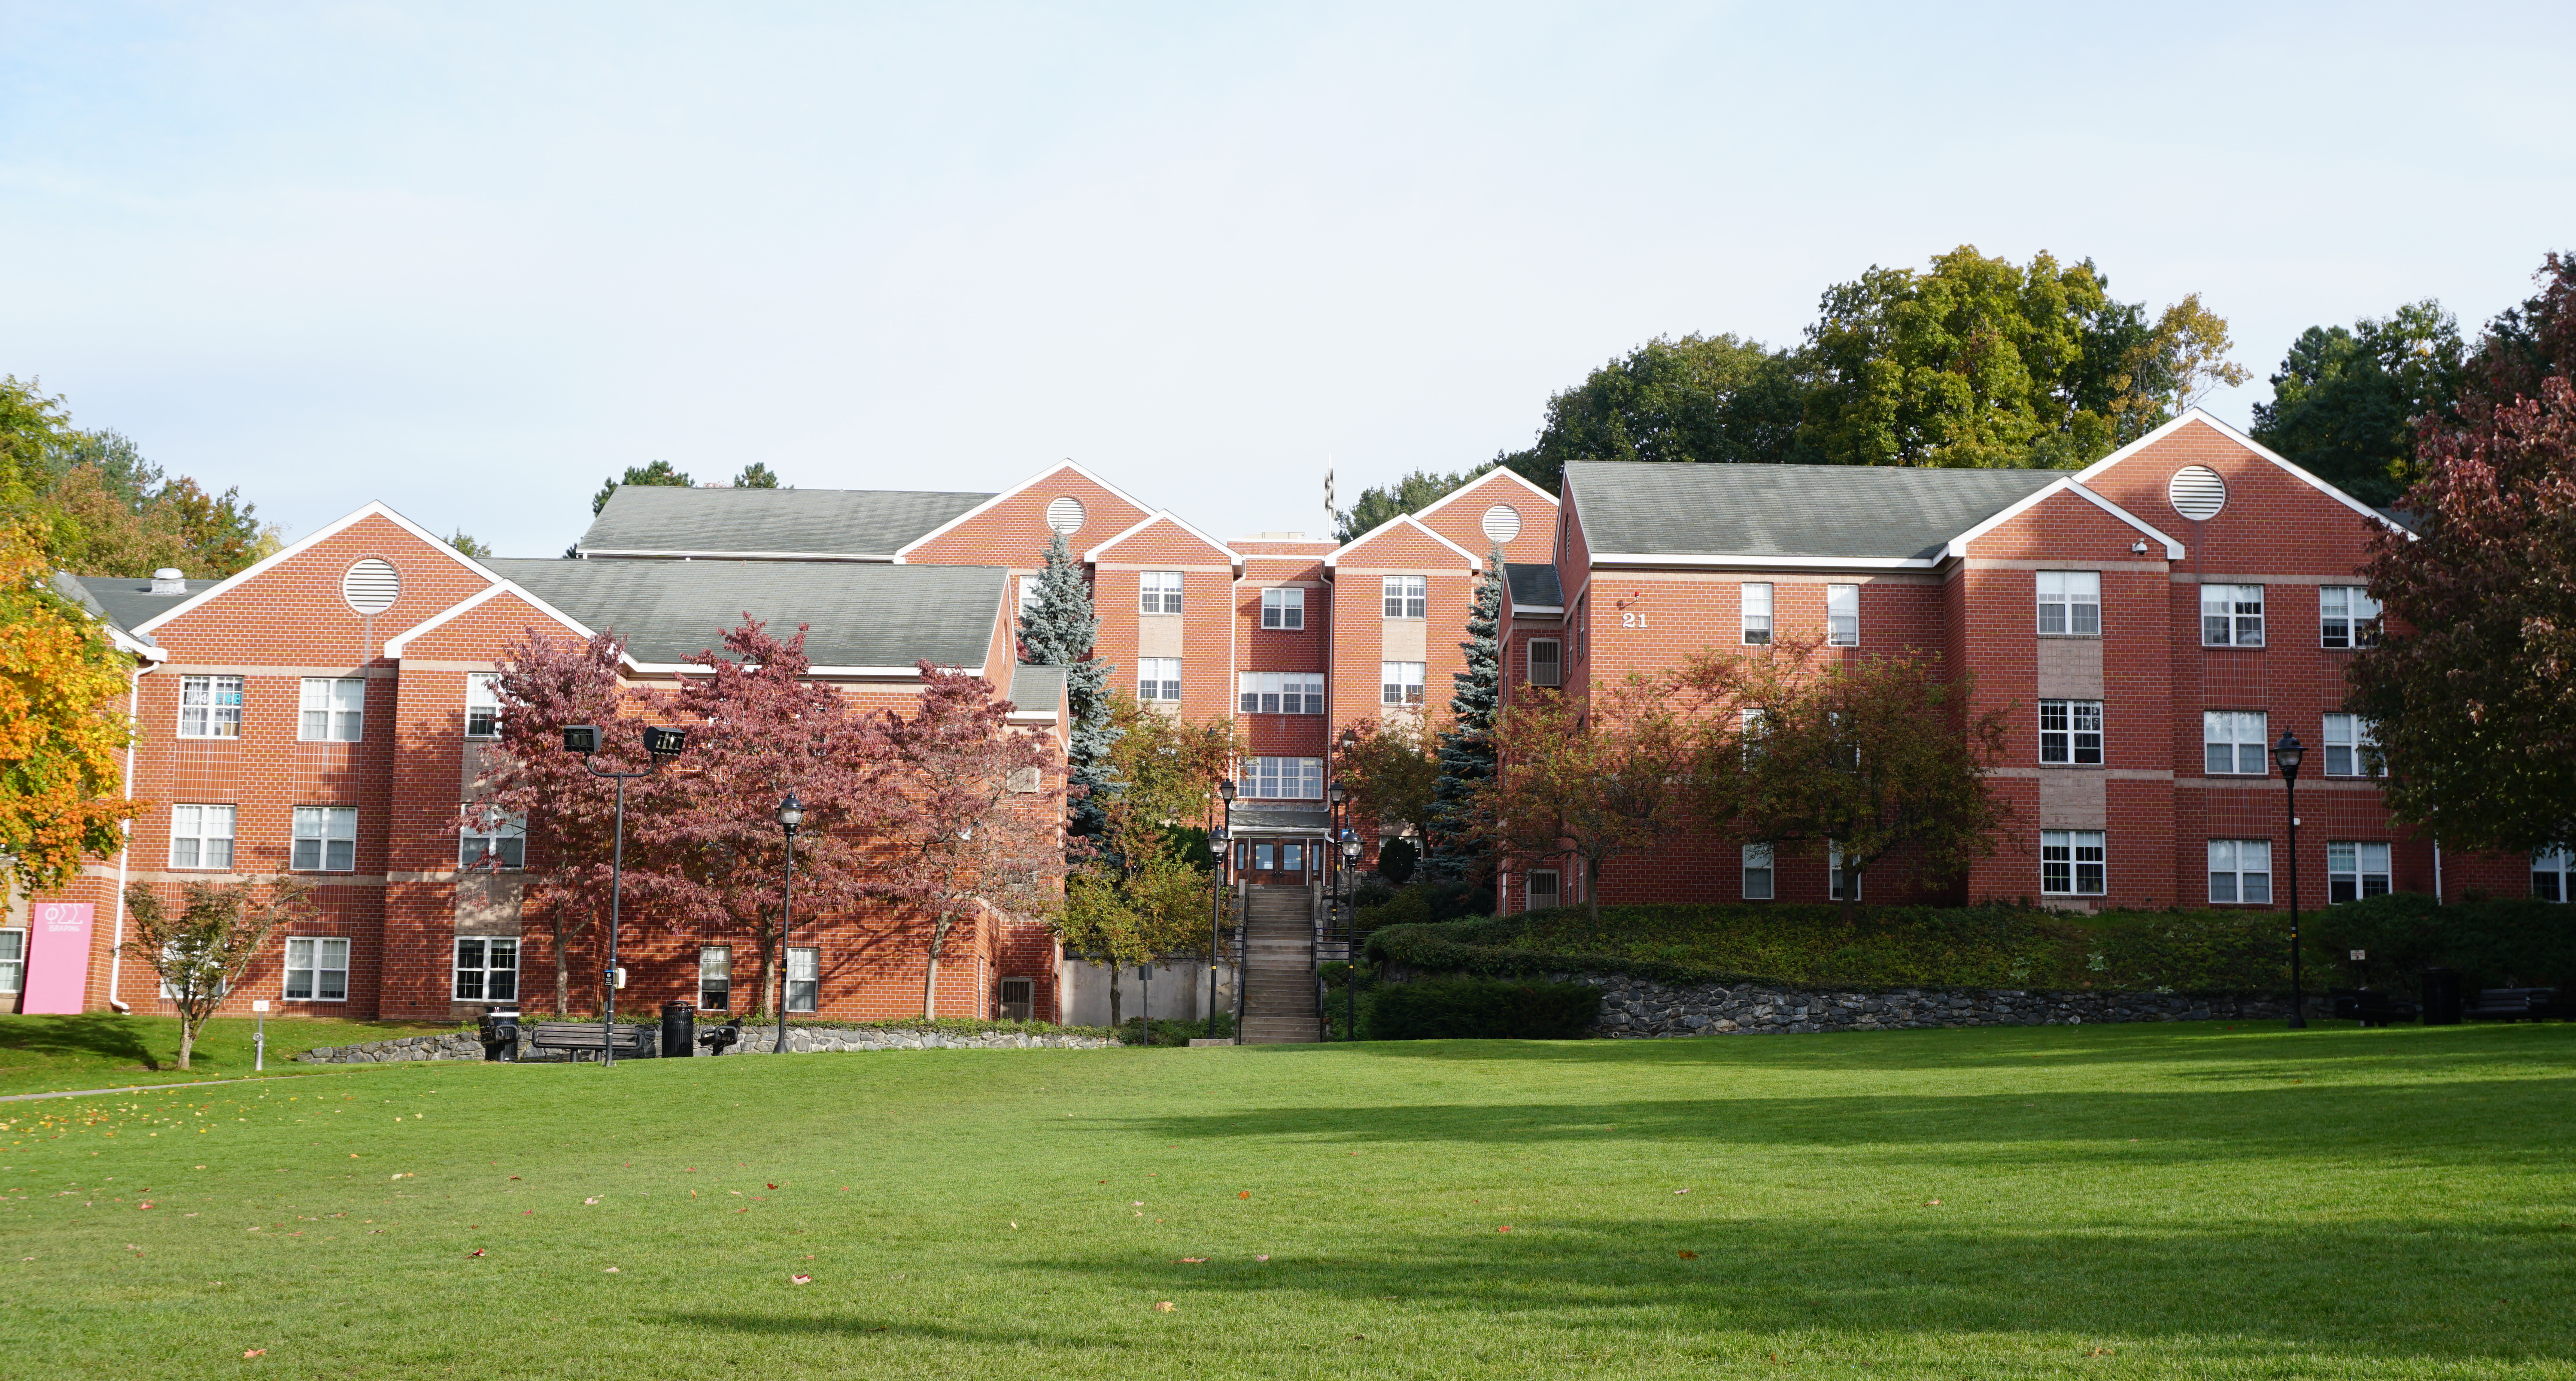 Dorms and courtyard at Bentley University